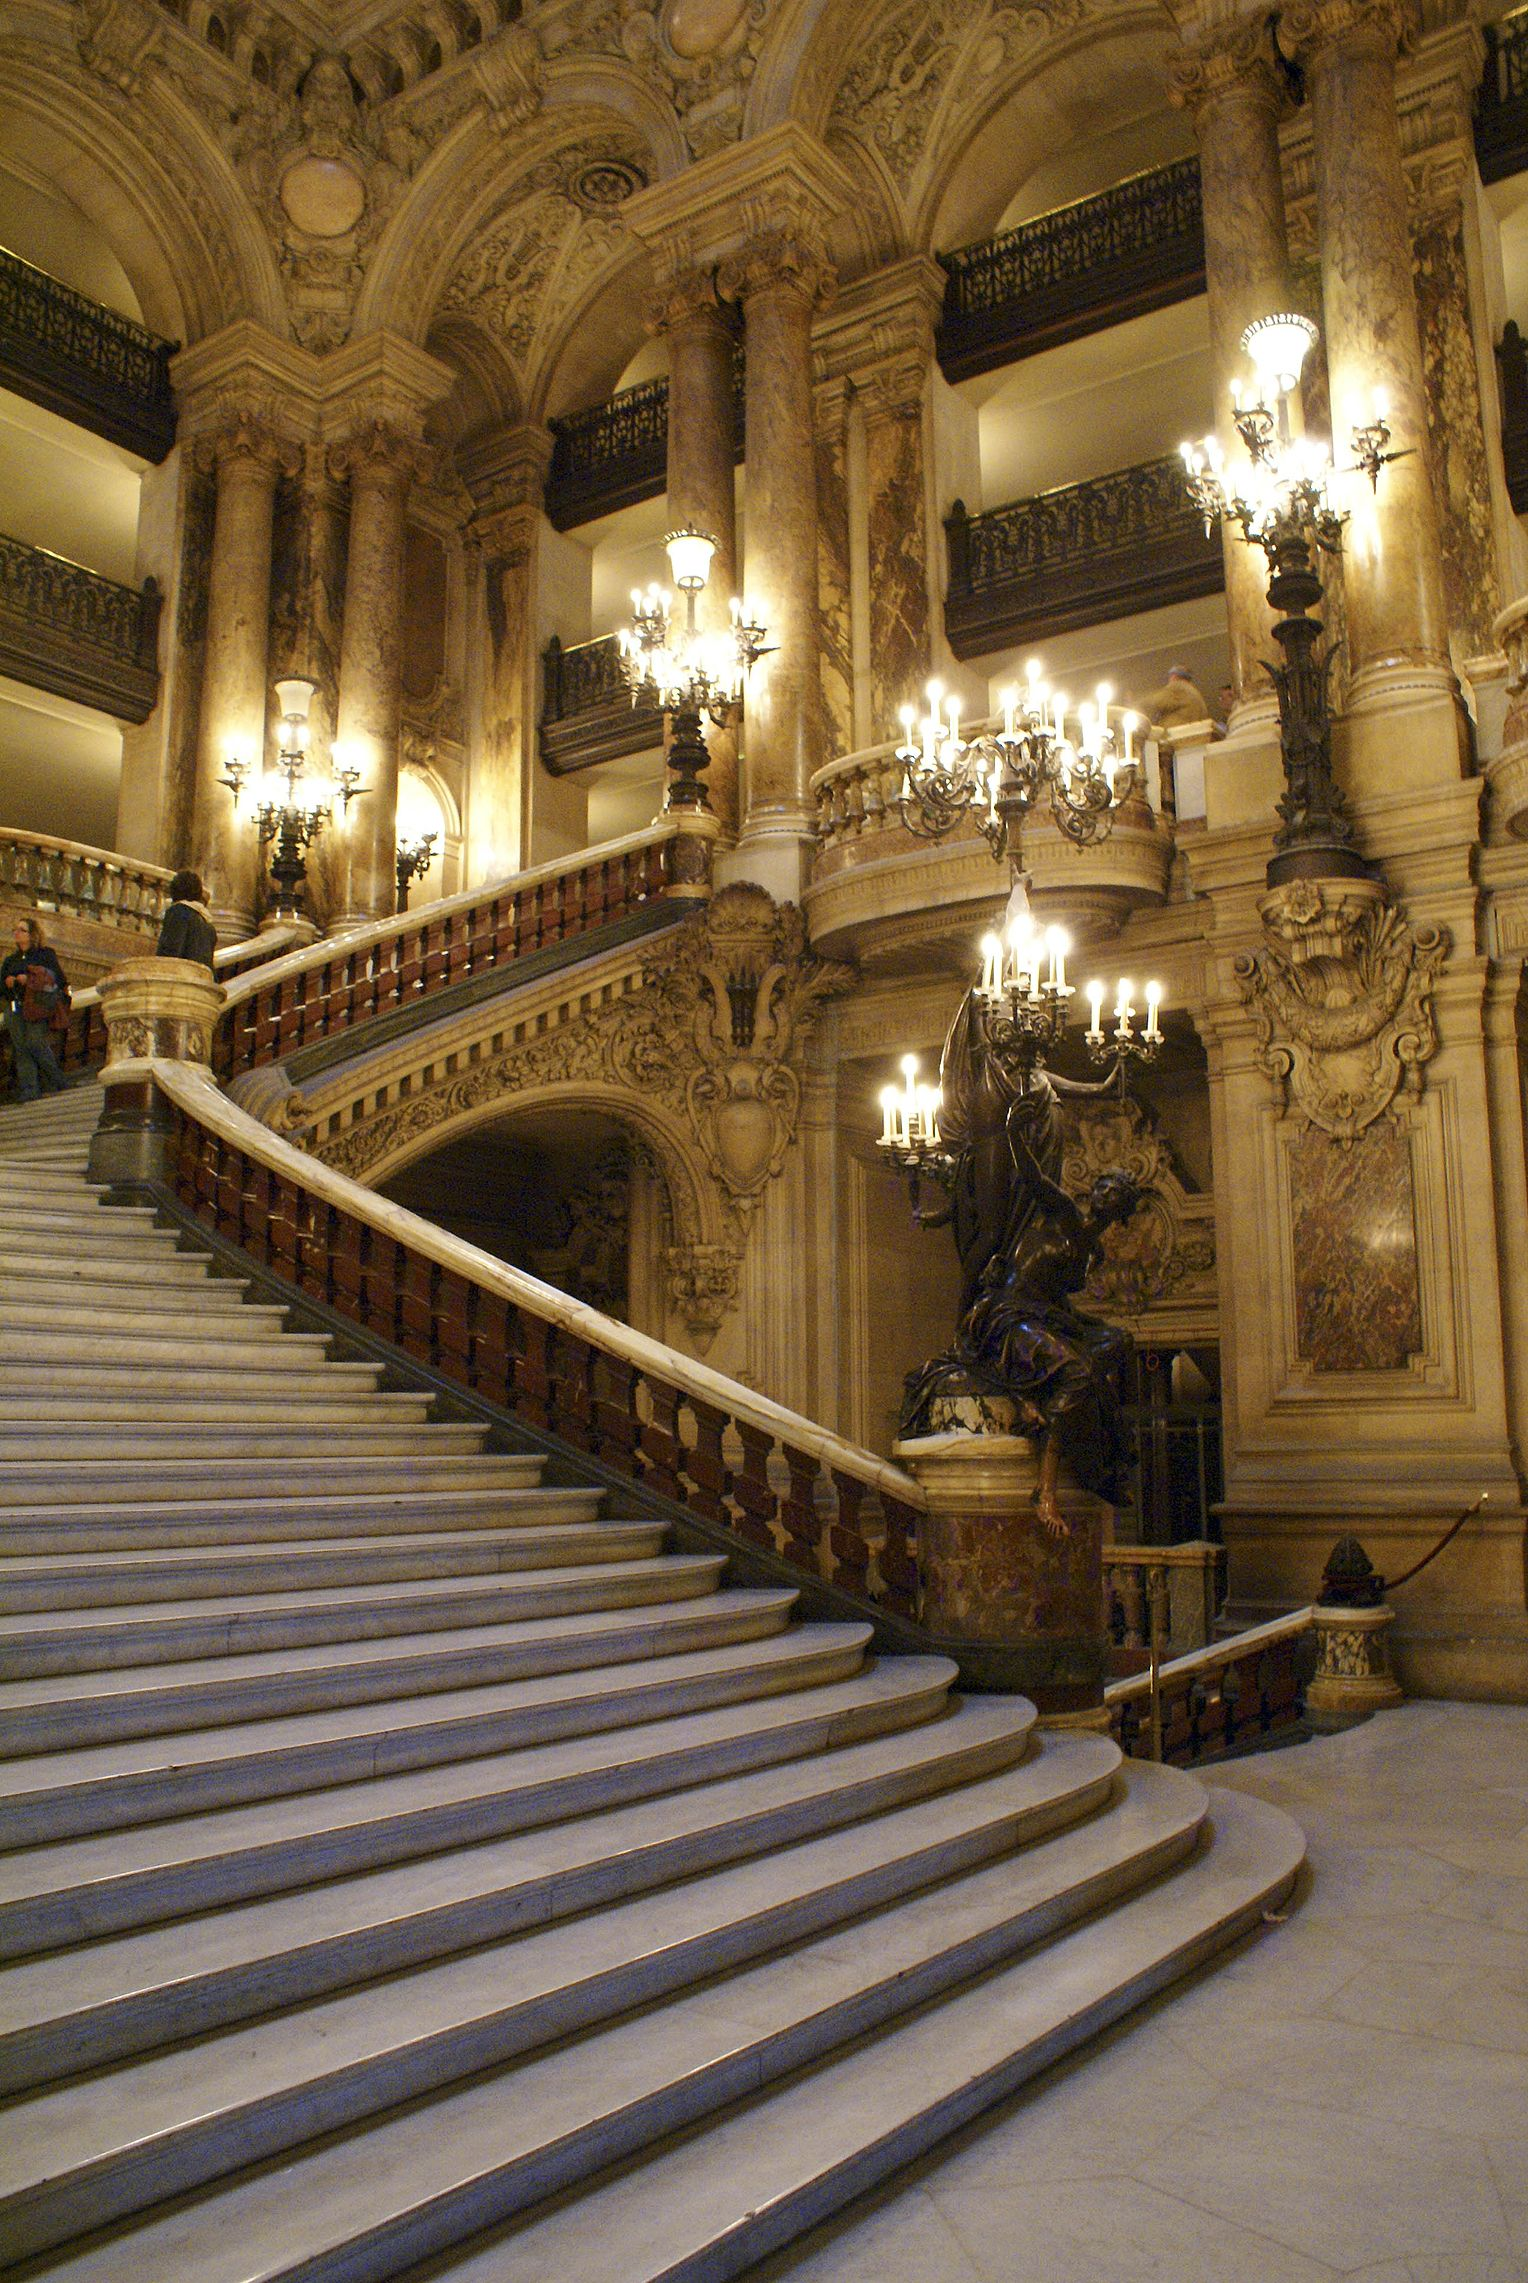 le grand escalier de l op ra garnier paris voulu par l. Black Bedroom Furniture Sets. Home Design Ideas